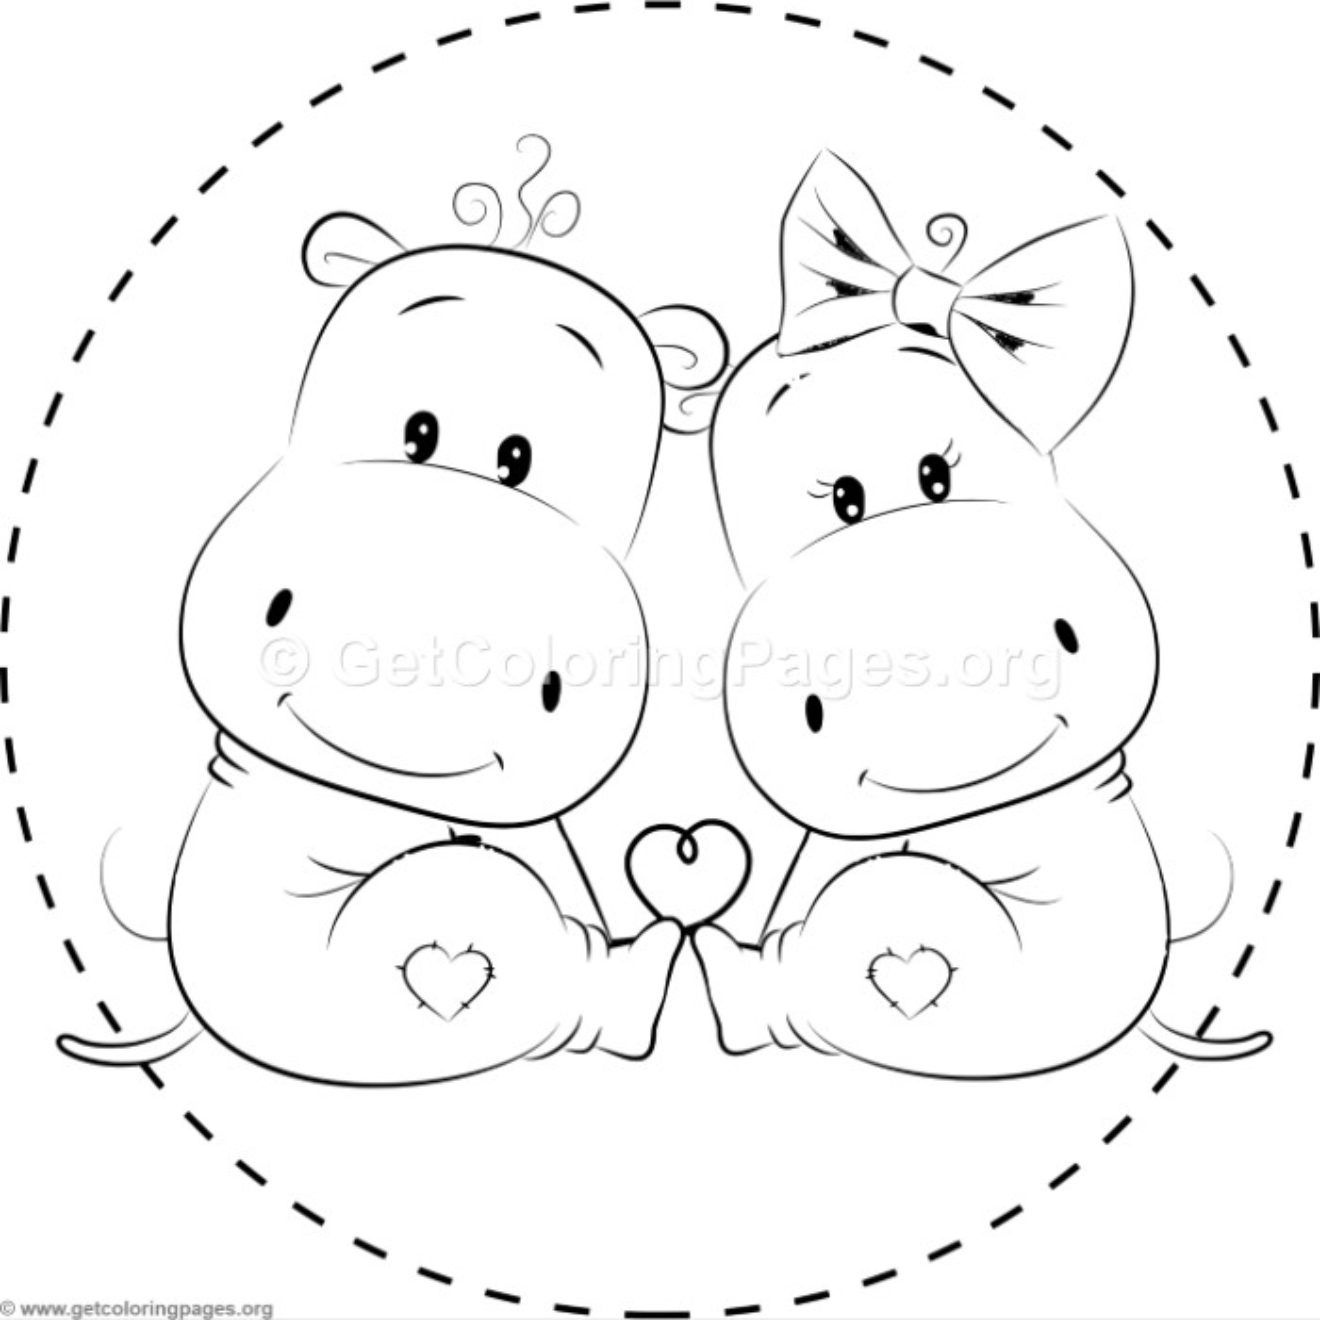 Cute Hippo Coloring Pages Getcoloringpages Org Cute Hippo Cute Coloring Pages Coloring Pages